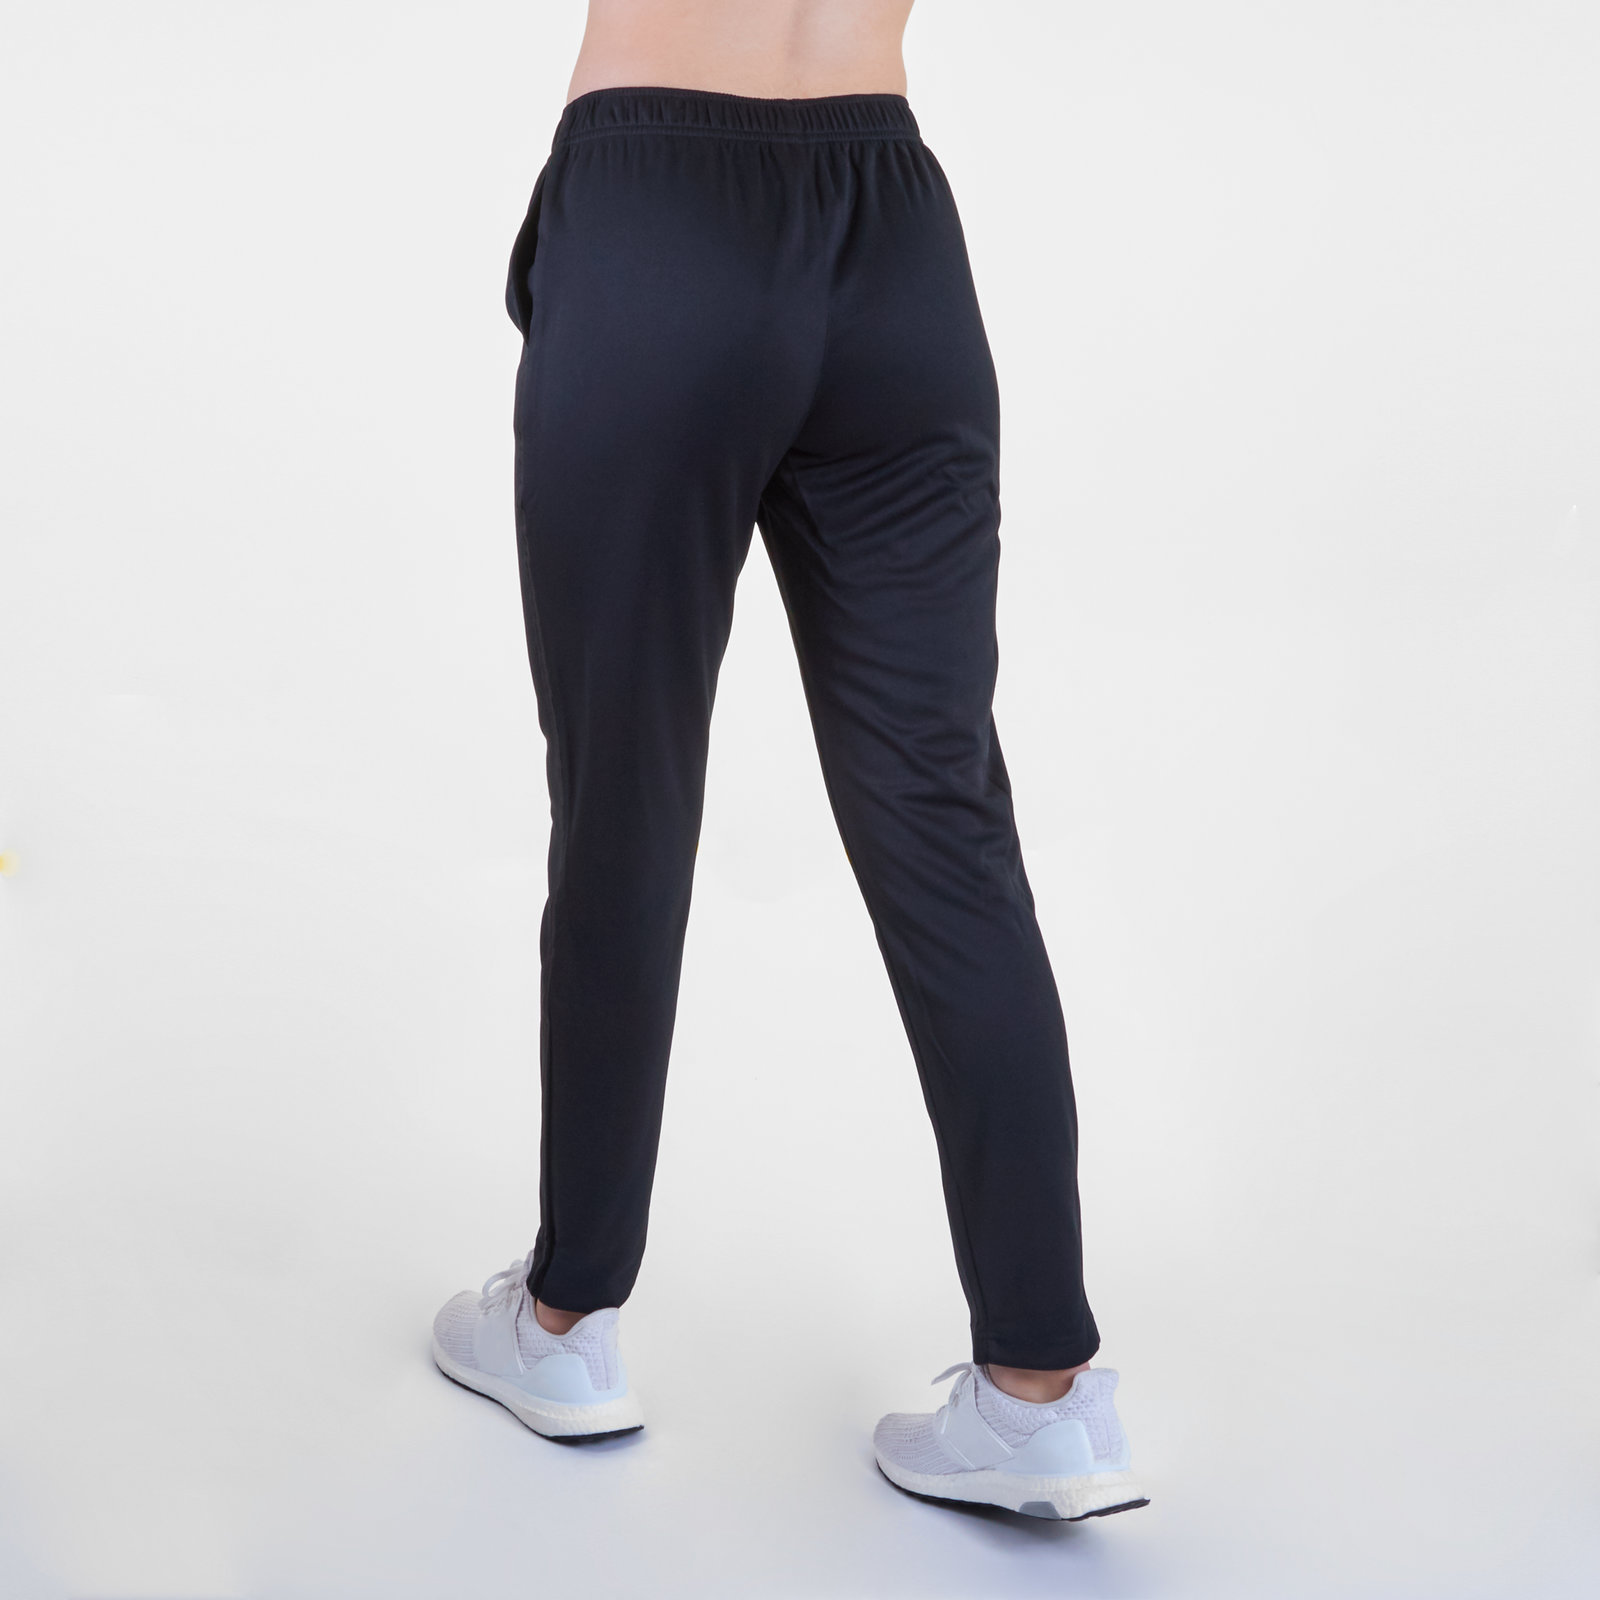 ecdef9257b5 Details about Canterbury Womens Tapered Ladies Poly Knit Training Sports Pants  Trousers Black